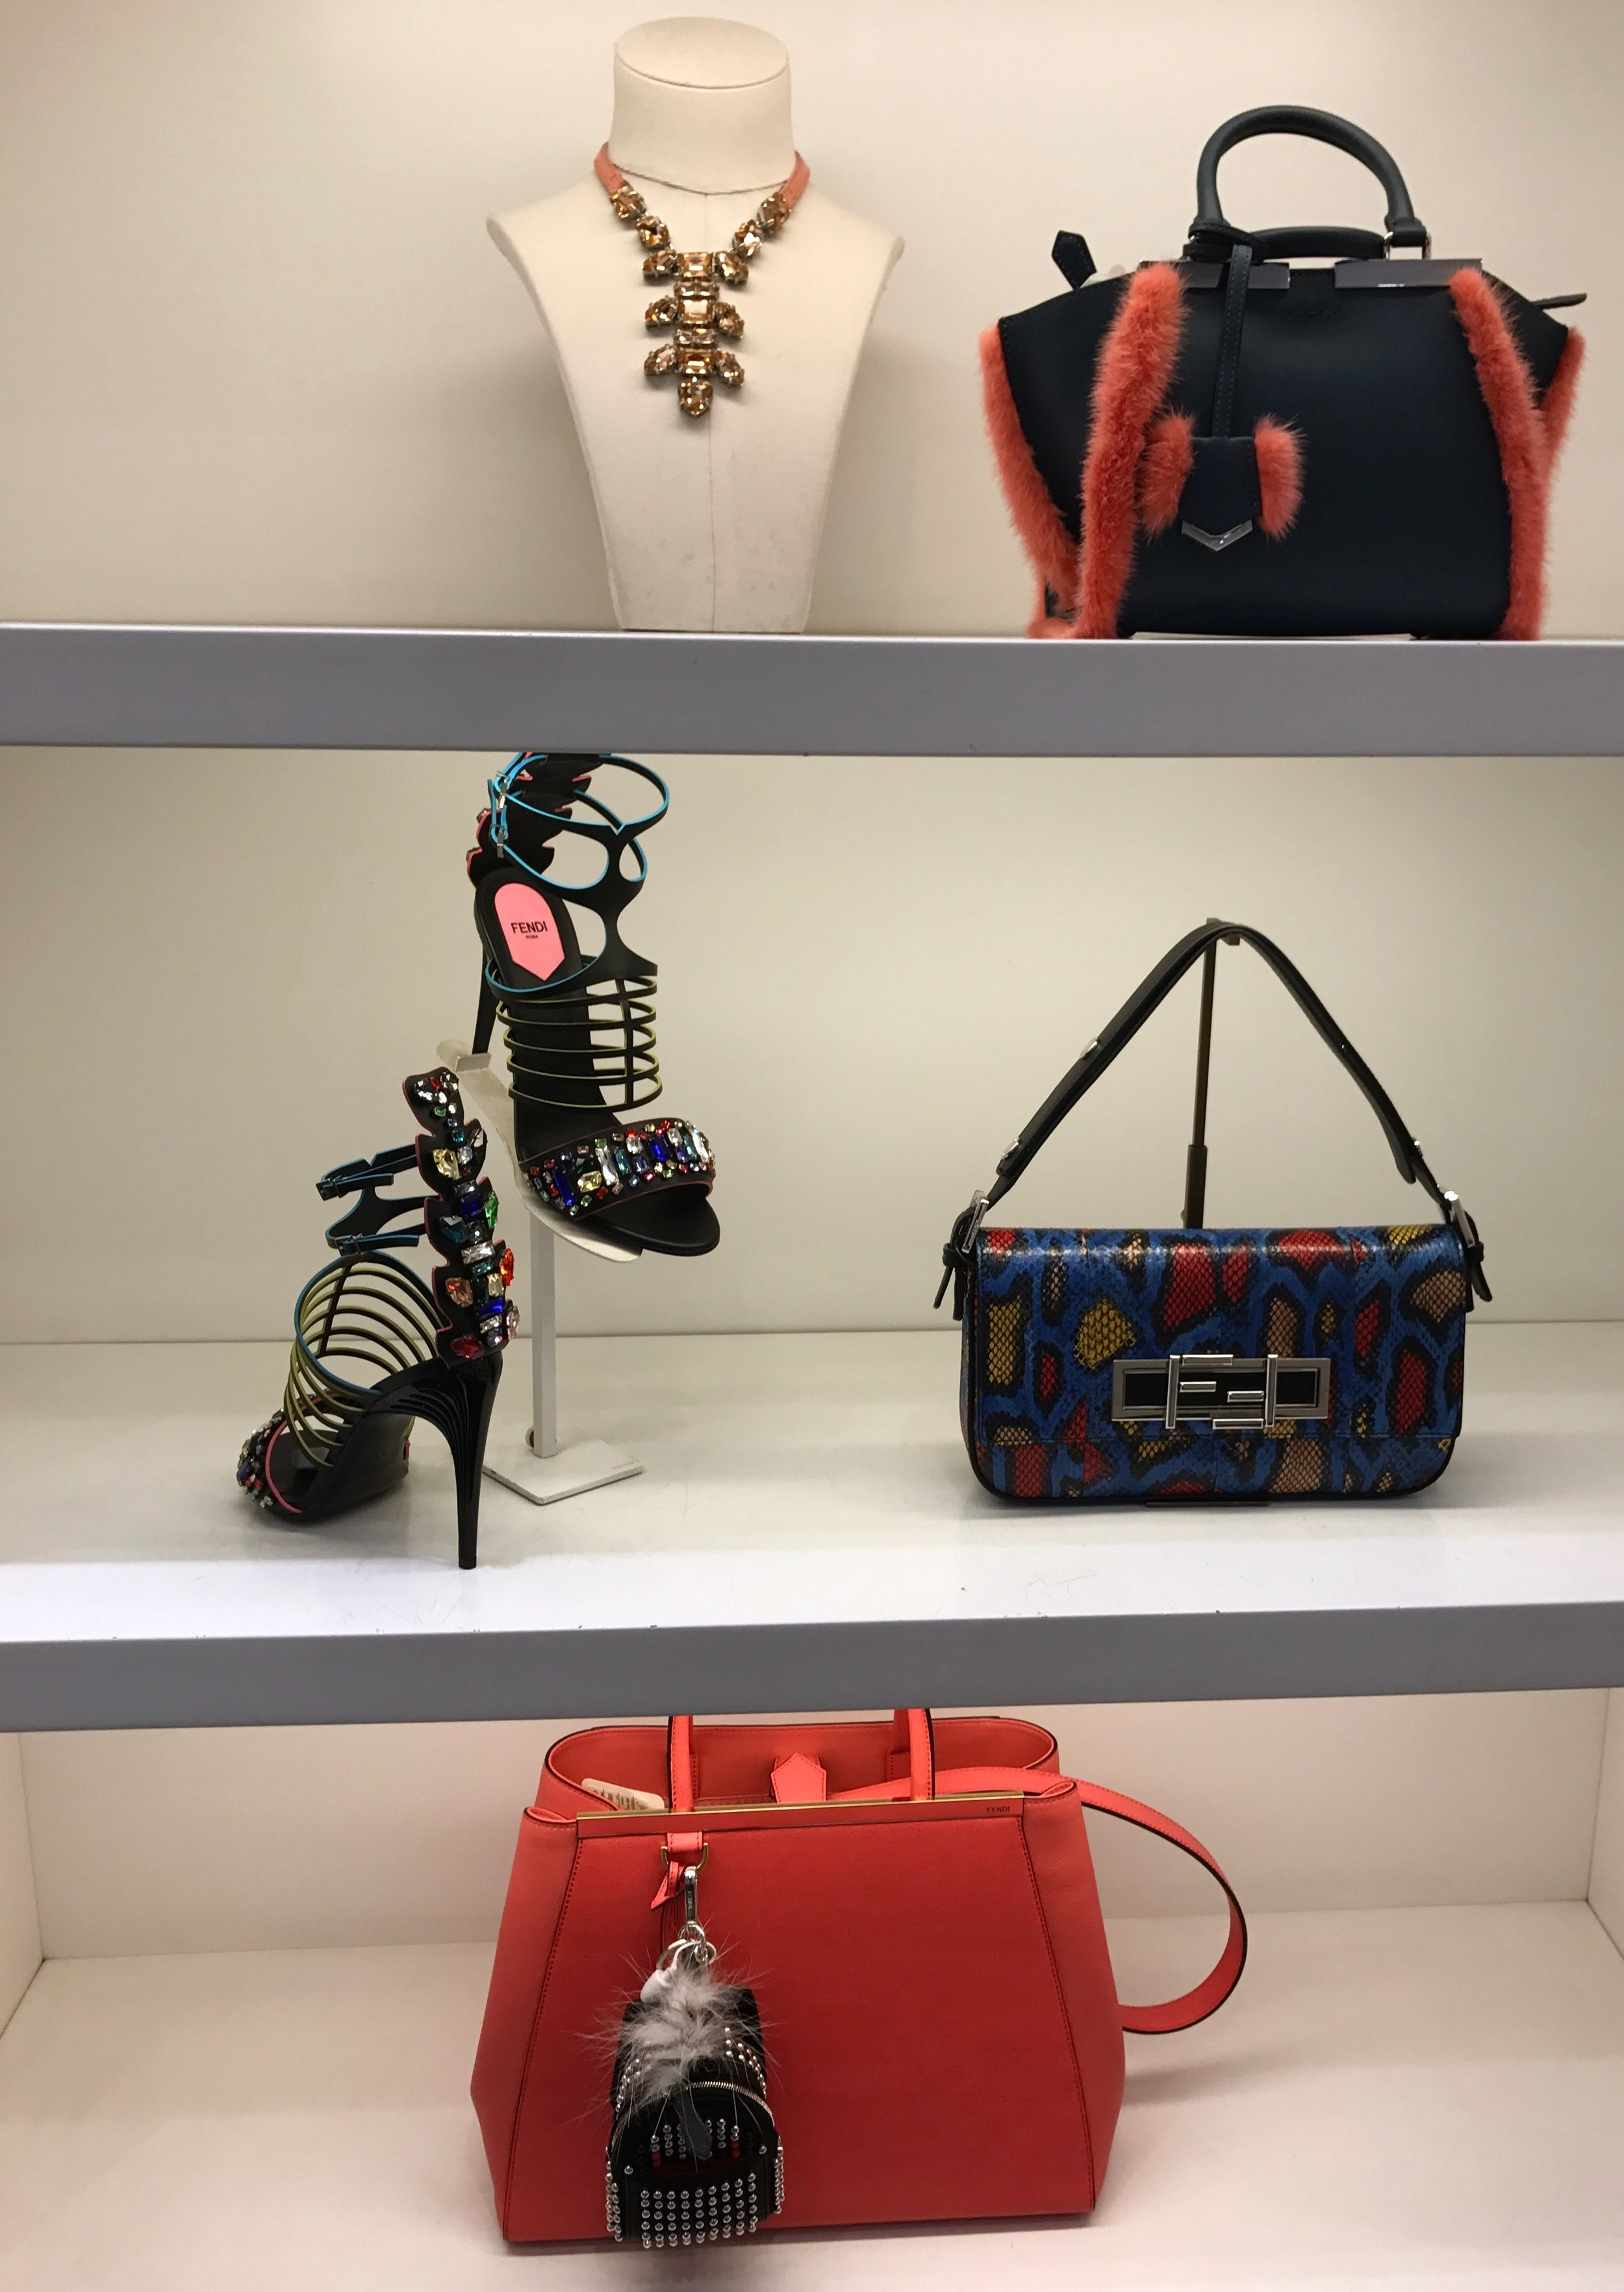 THE GROWN UP EDIT - Fendi Bicester Village